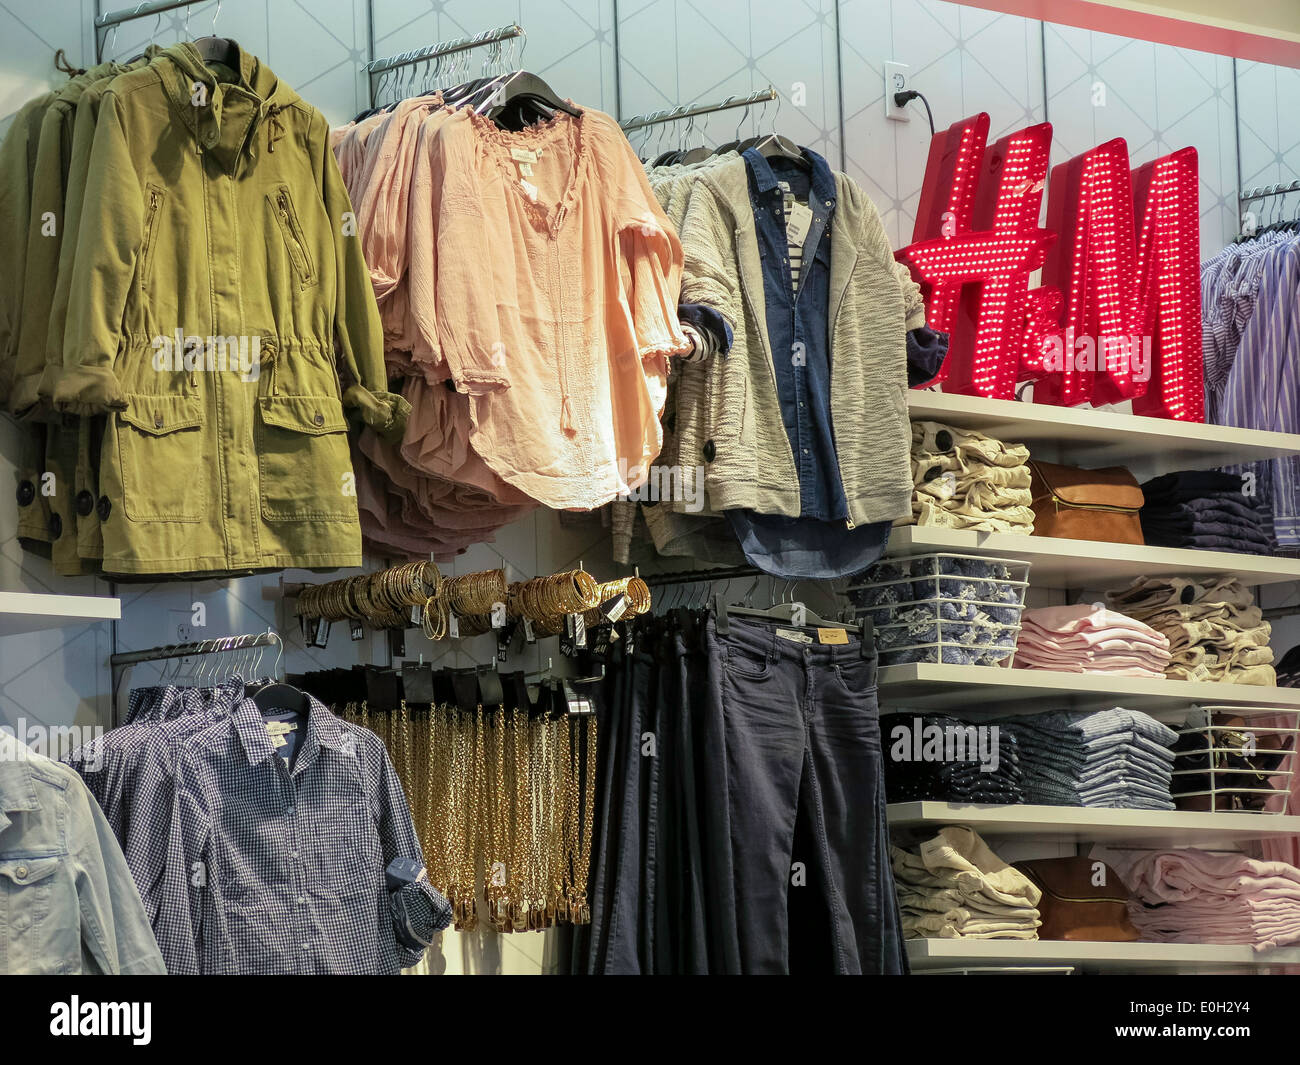 Shelving , Hanging Goods and Logo, H&M Clothing Store Interior in Times Square, NYC, USA - Stock Image